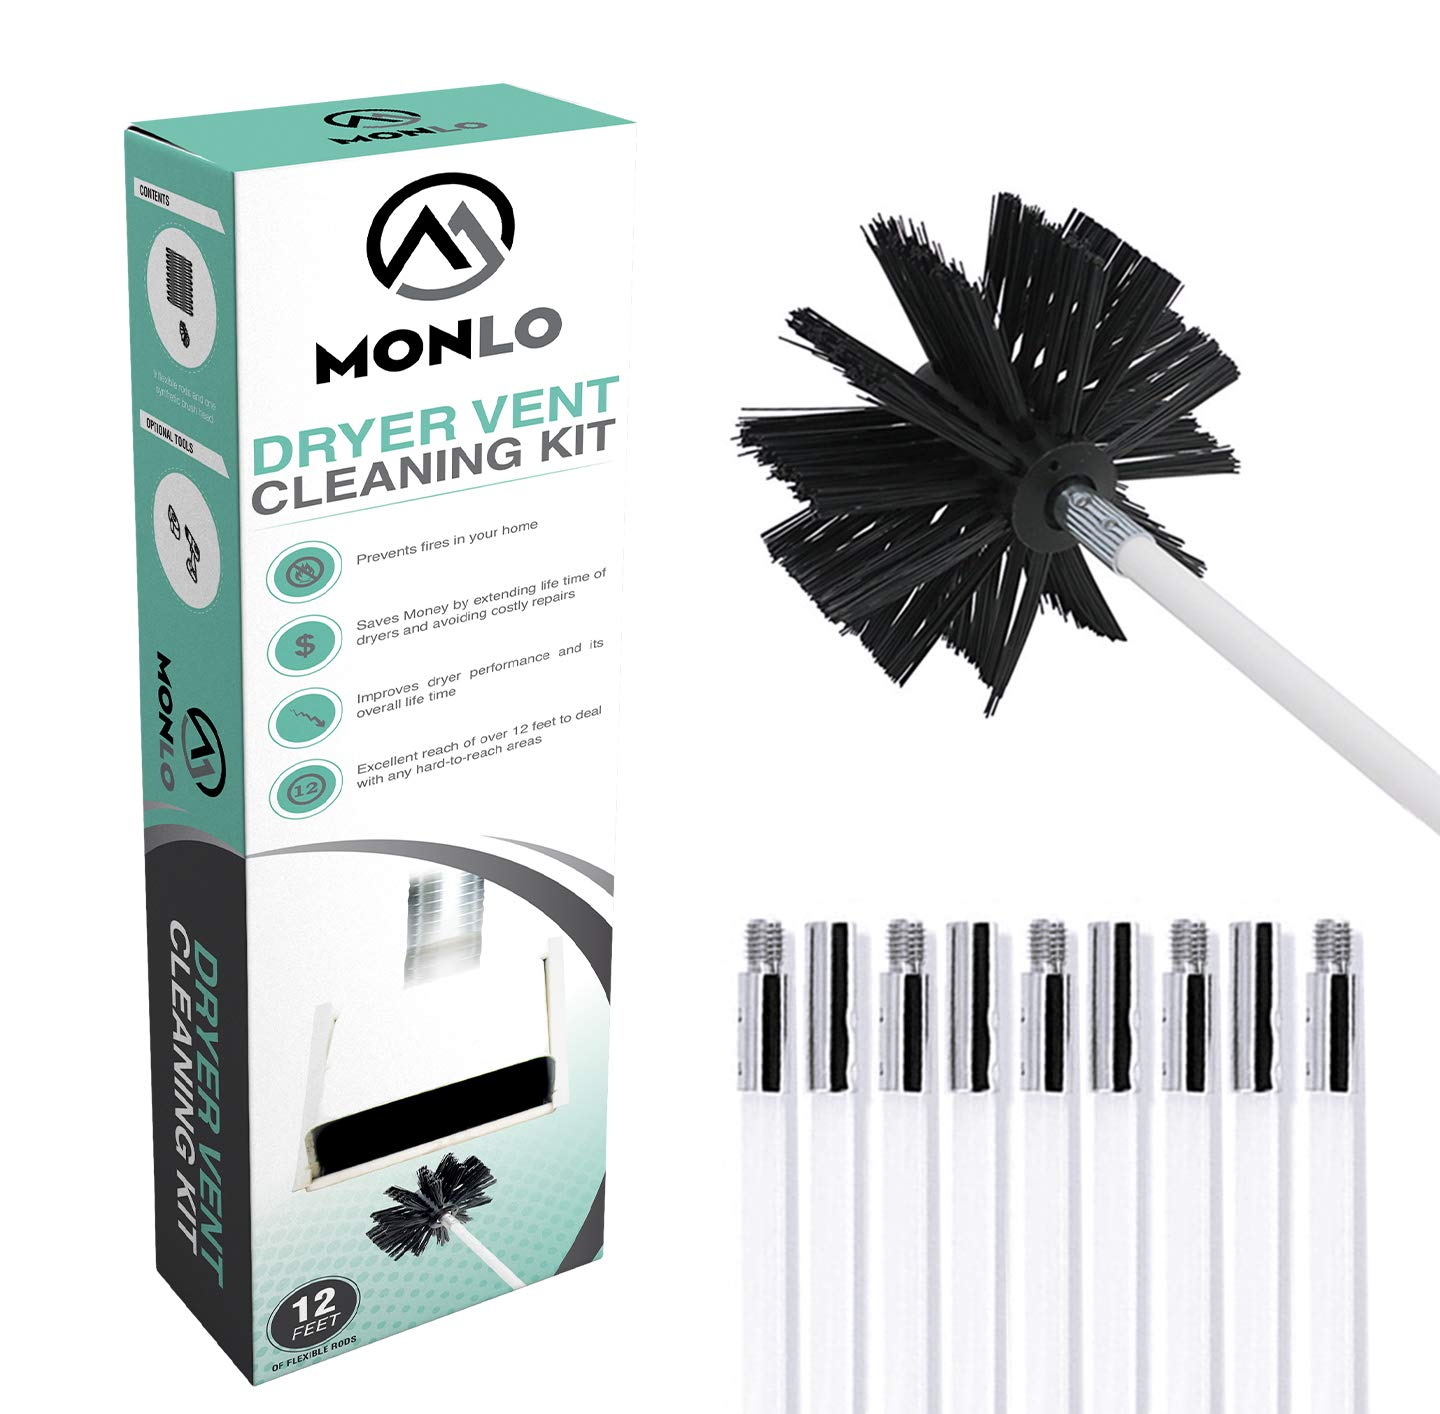 Flexible Dryer Vent Cleaning Kit, Lint Remover, Extends Up To 12 Feet With A Synthetic Brush Head. Can Be Used With Or Without A Drill - MonLo